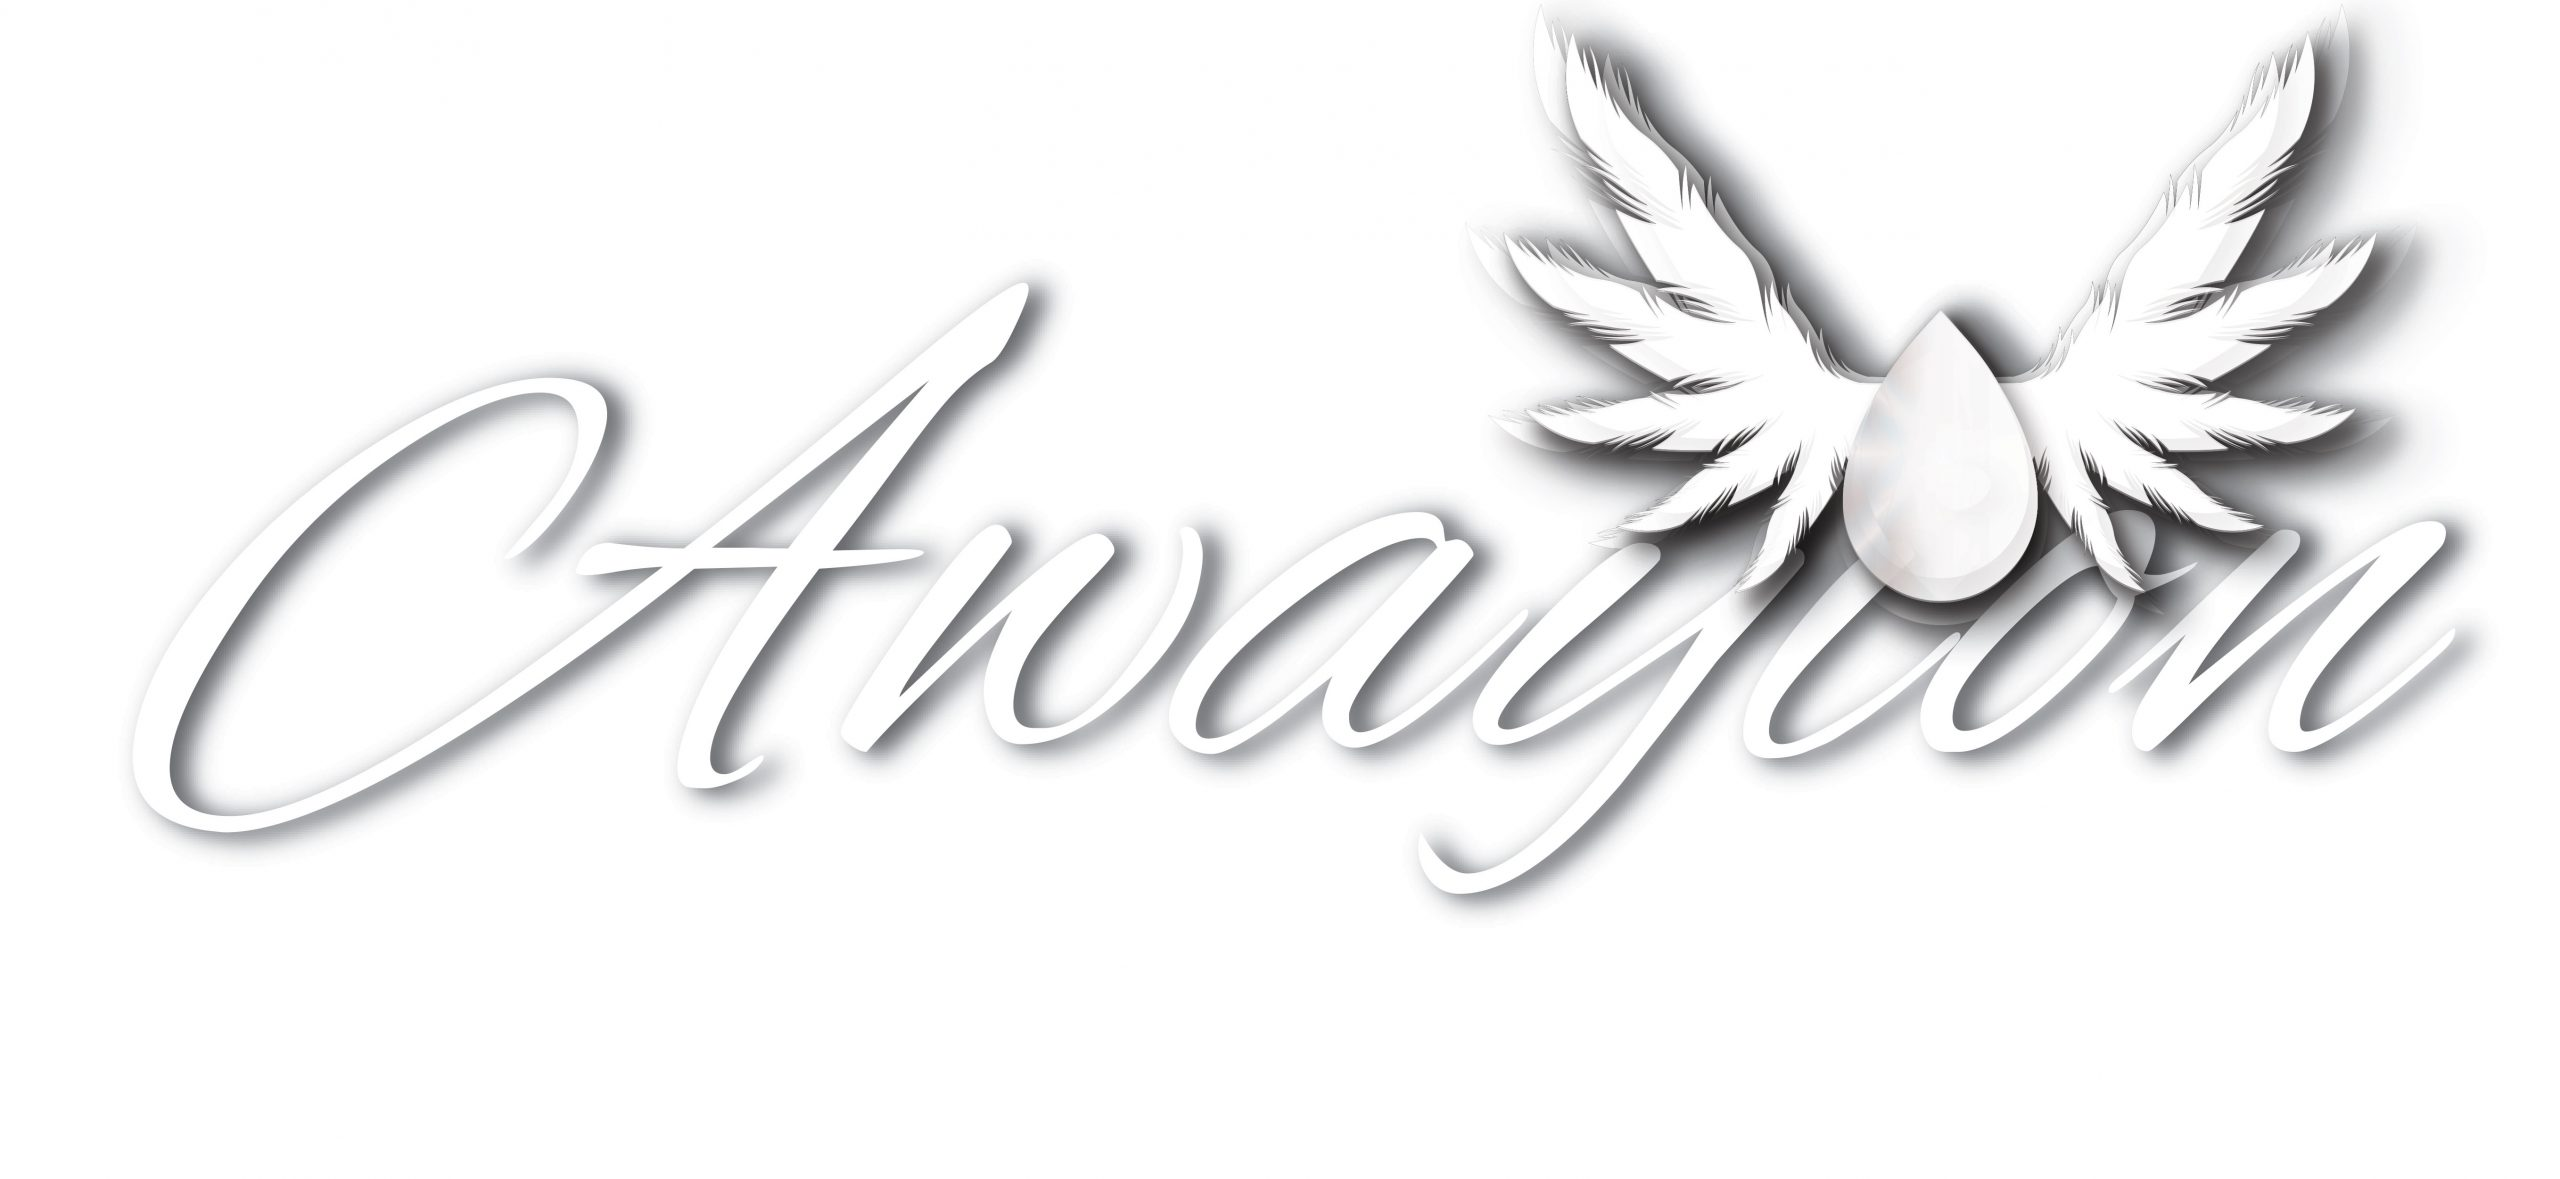 The Official Awayion Logo 2020 All Rights Reserved